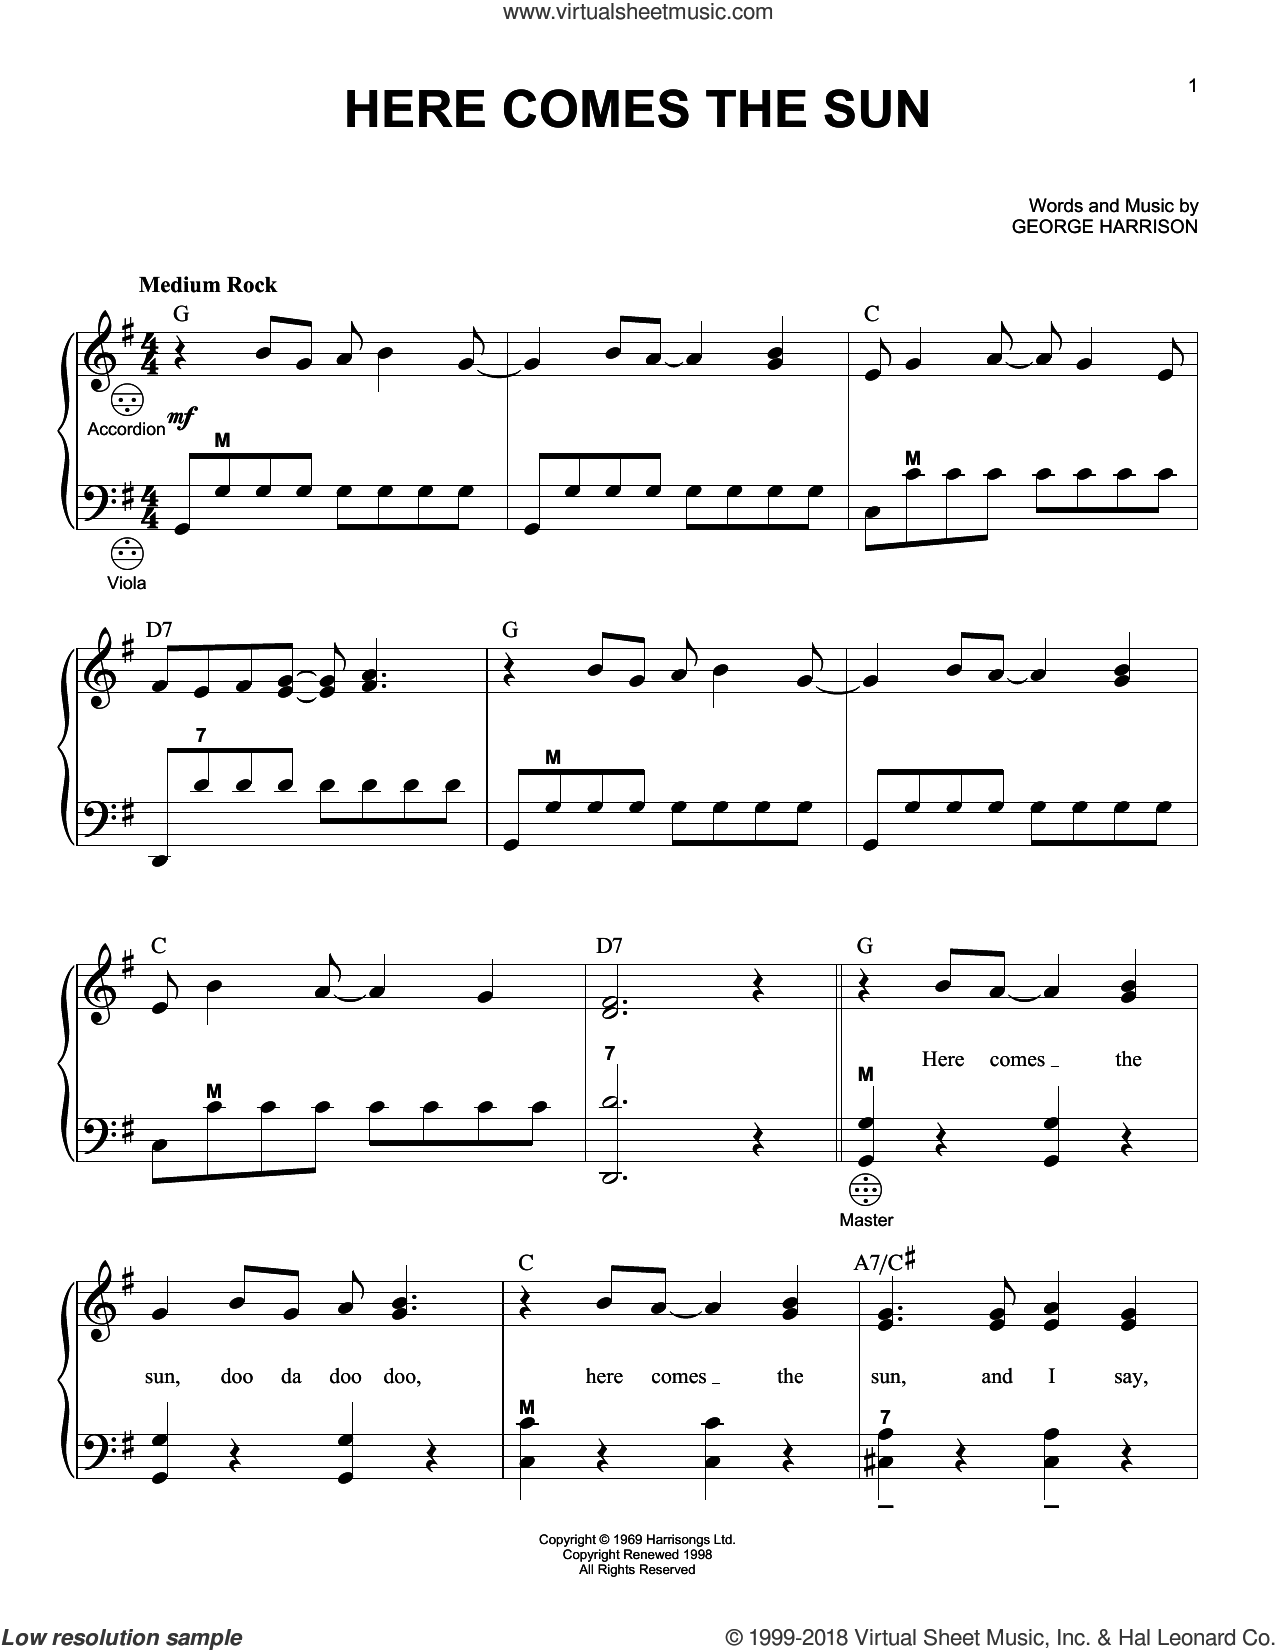 Here Comes The Sun sheet music for accordion by The Beatles and George Harrison, intermediate skill level